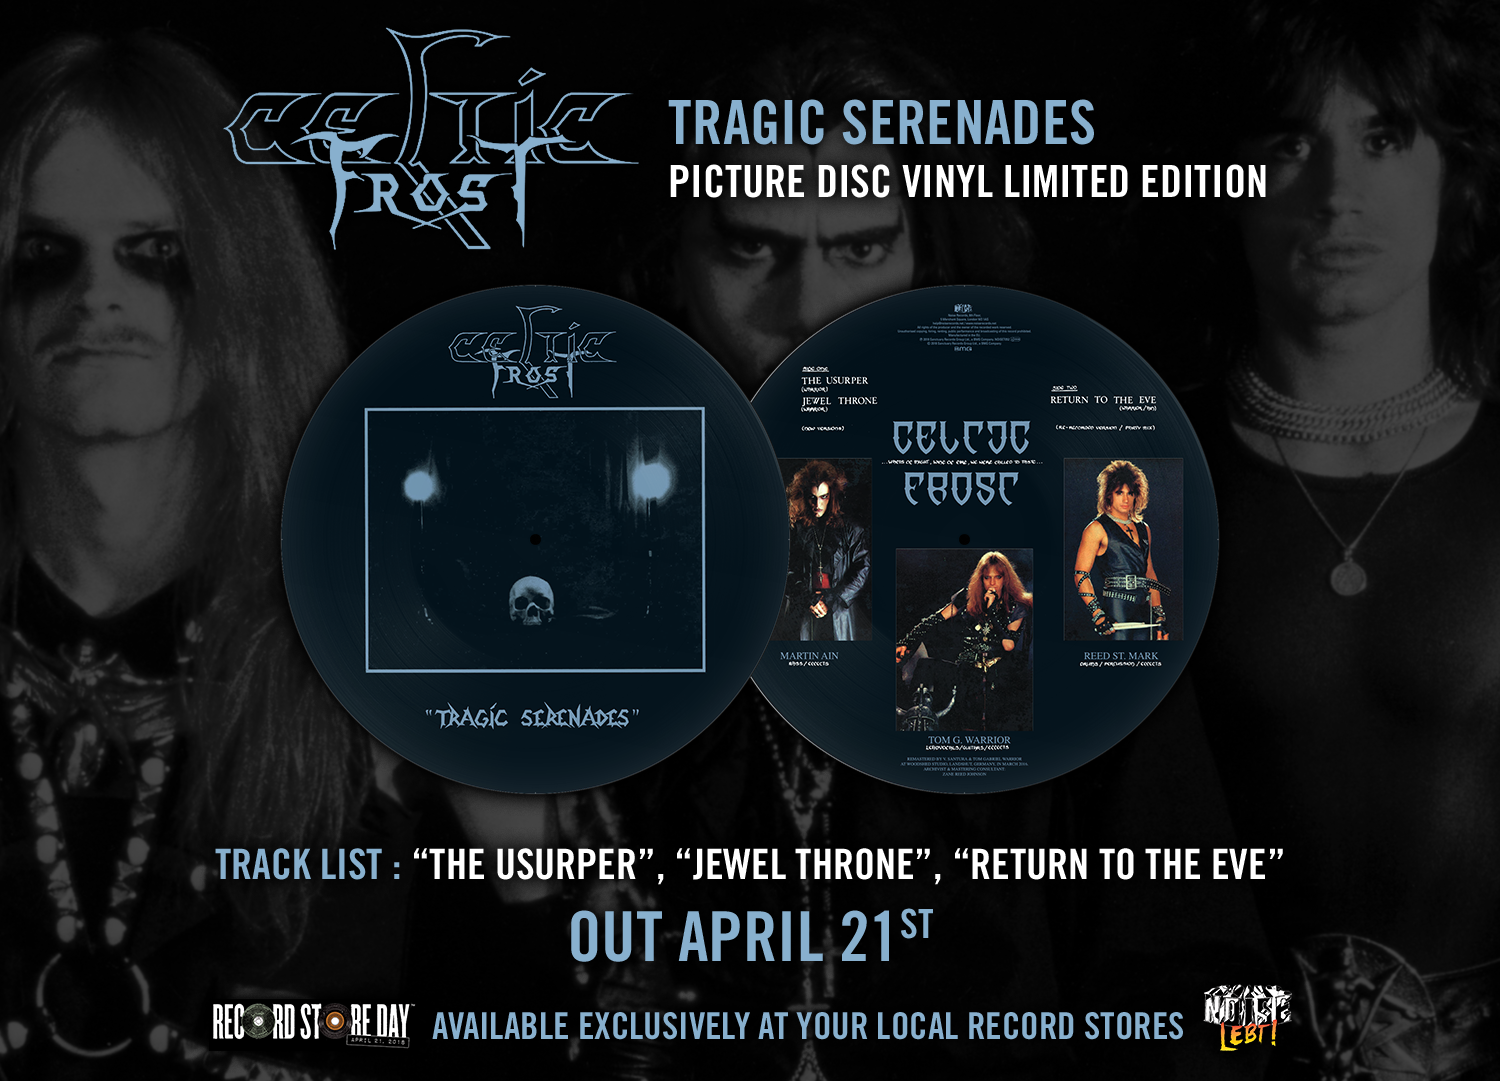 Celtic Frost - Tragic Serenades 2018 RSD Picture Disc